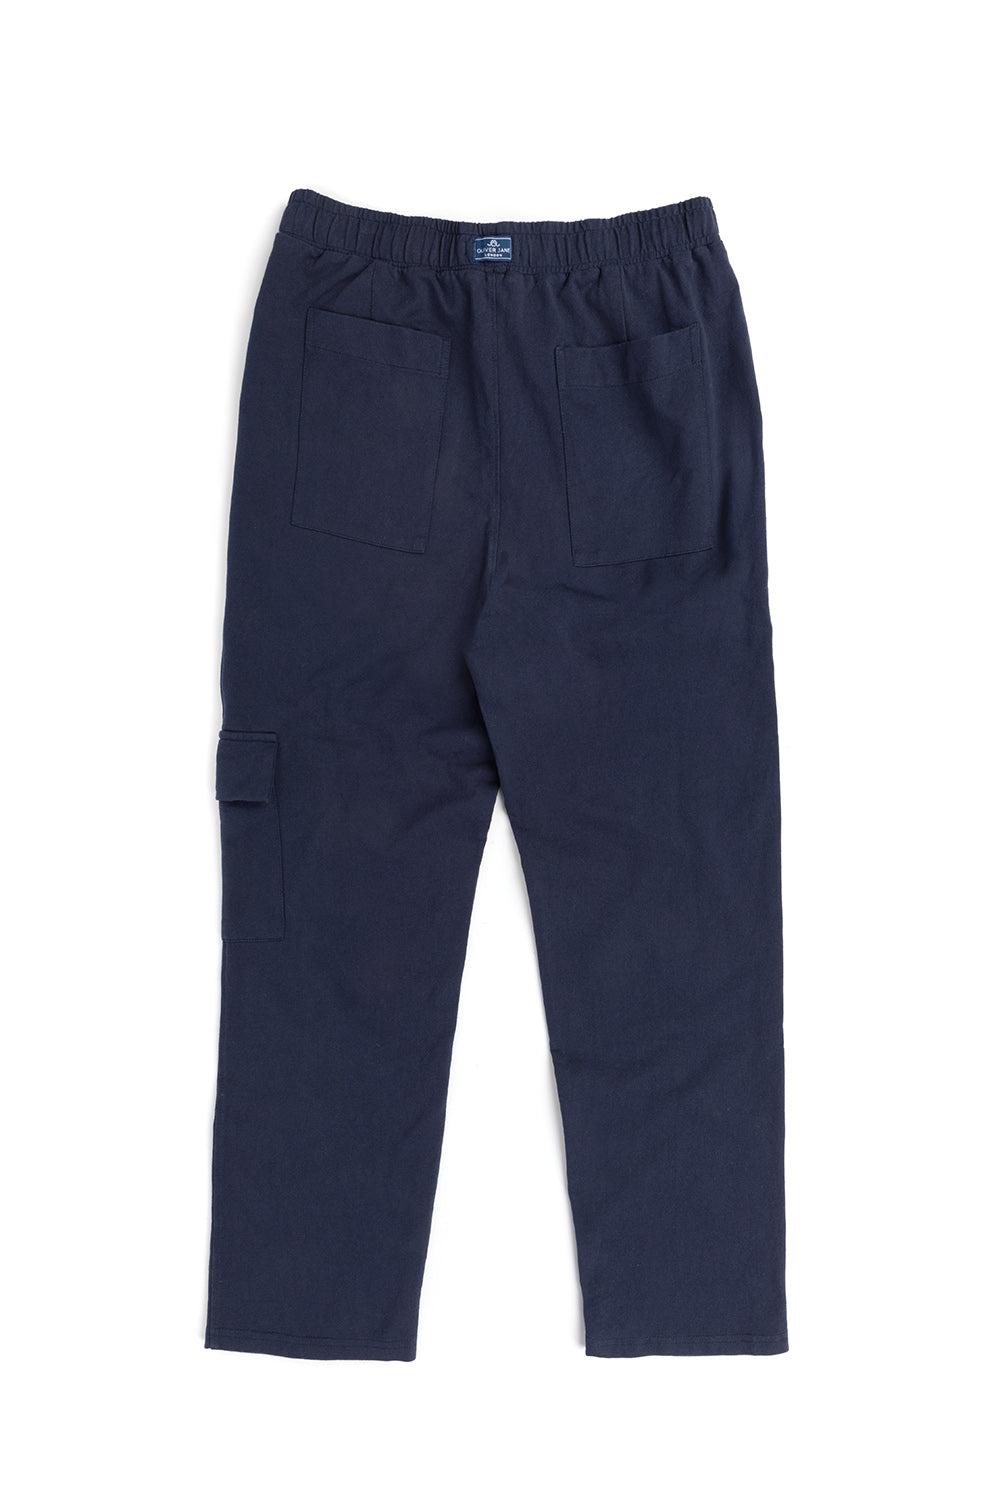 The Navy Cargo Beach Pant